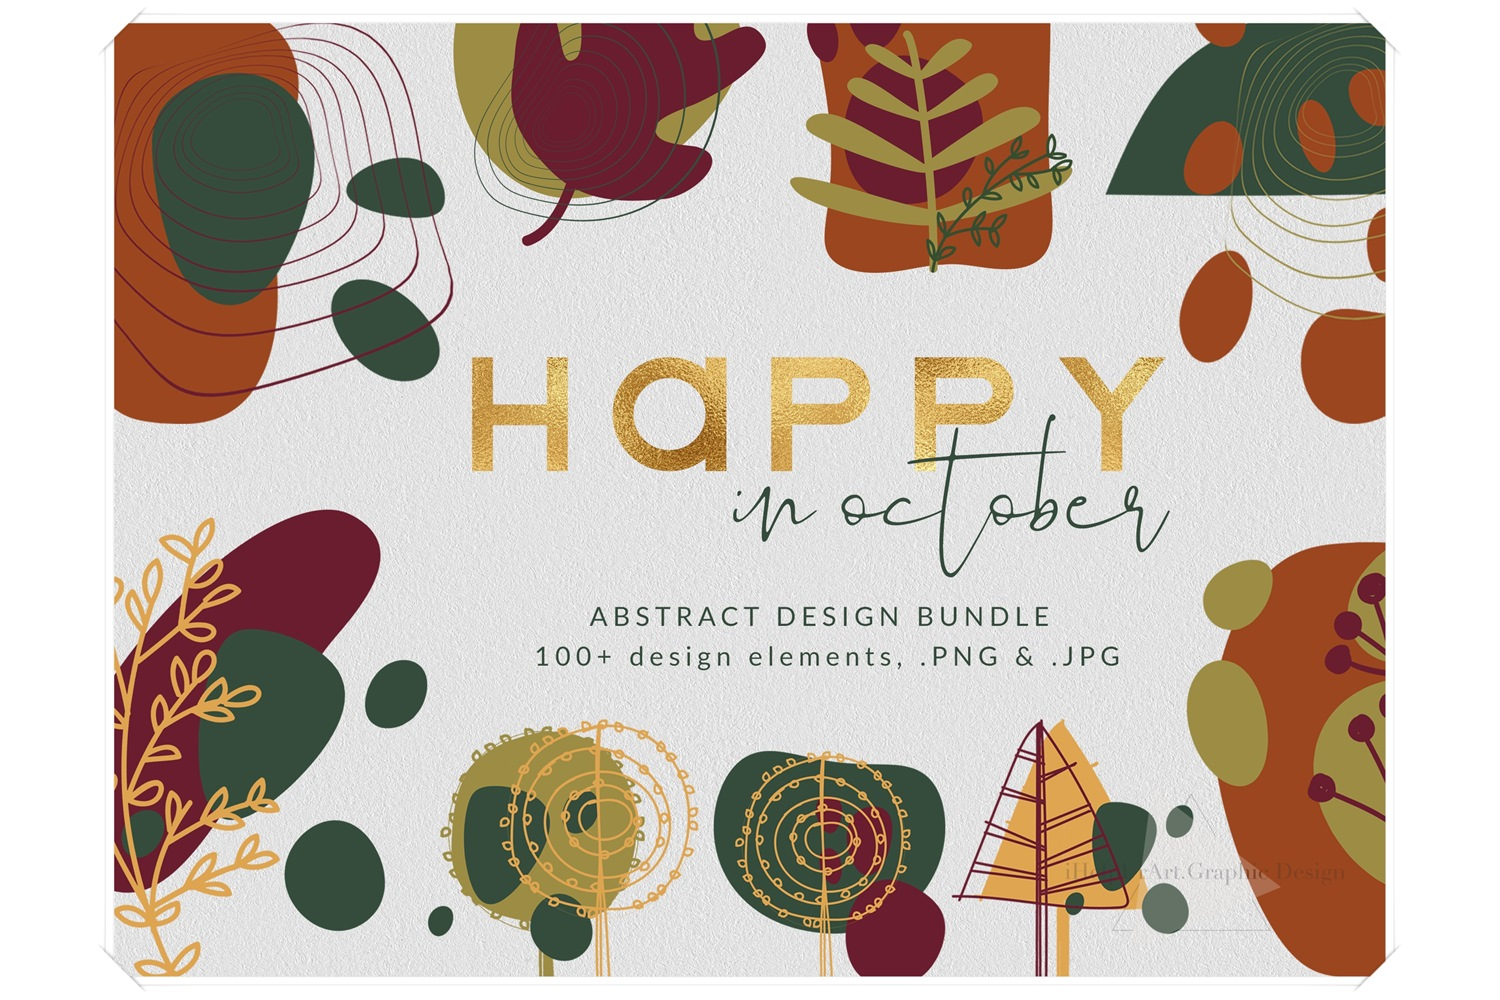 Modern Abstract Design Bundle - Autumn Clip Art example image 1